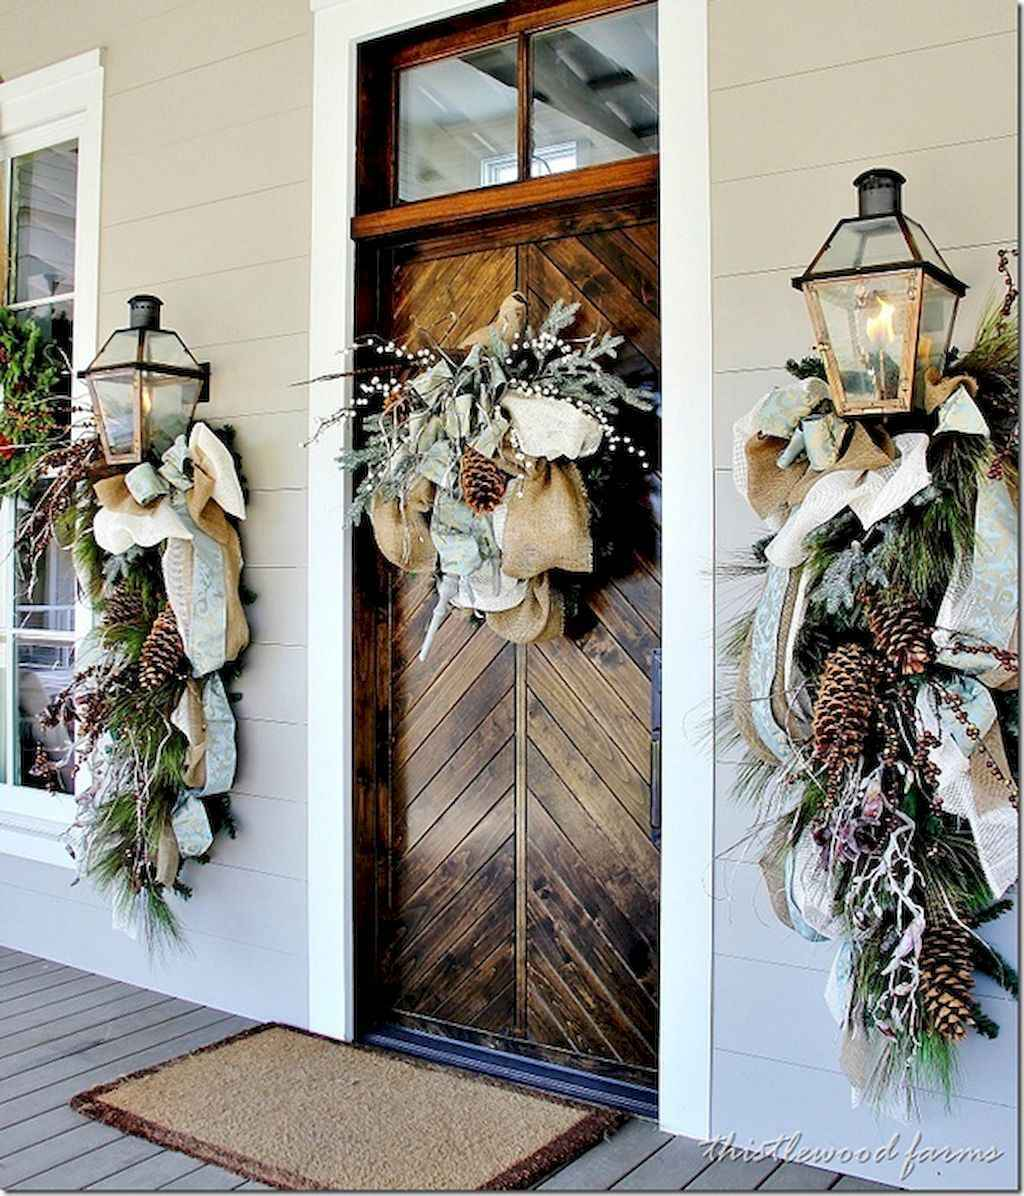 28 outdoor christmas decorations ideas (16)